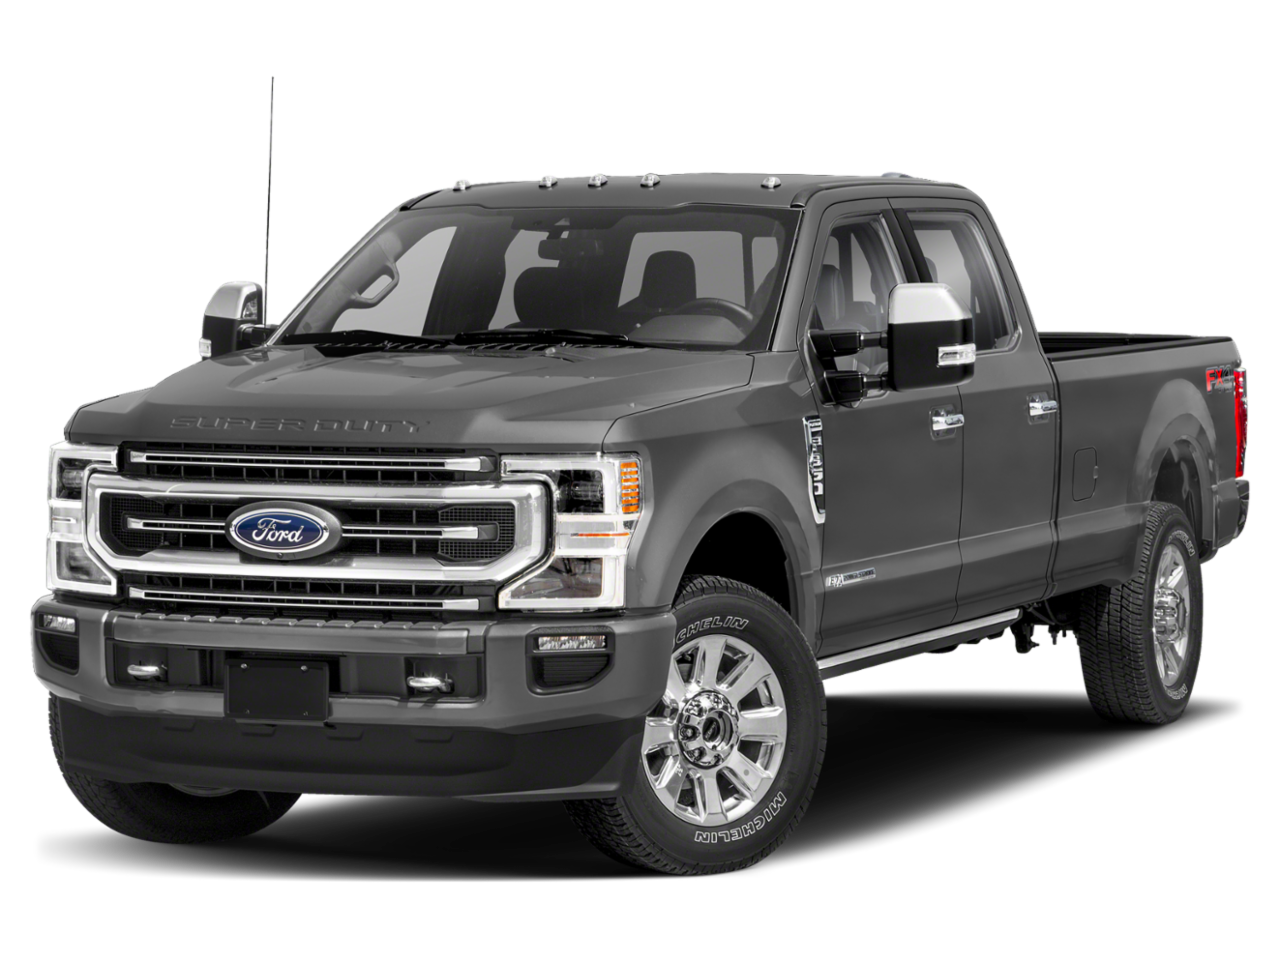 Ford 2020 Super Duty F-350 DRW Platinum